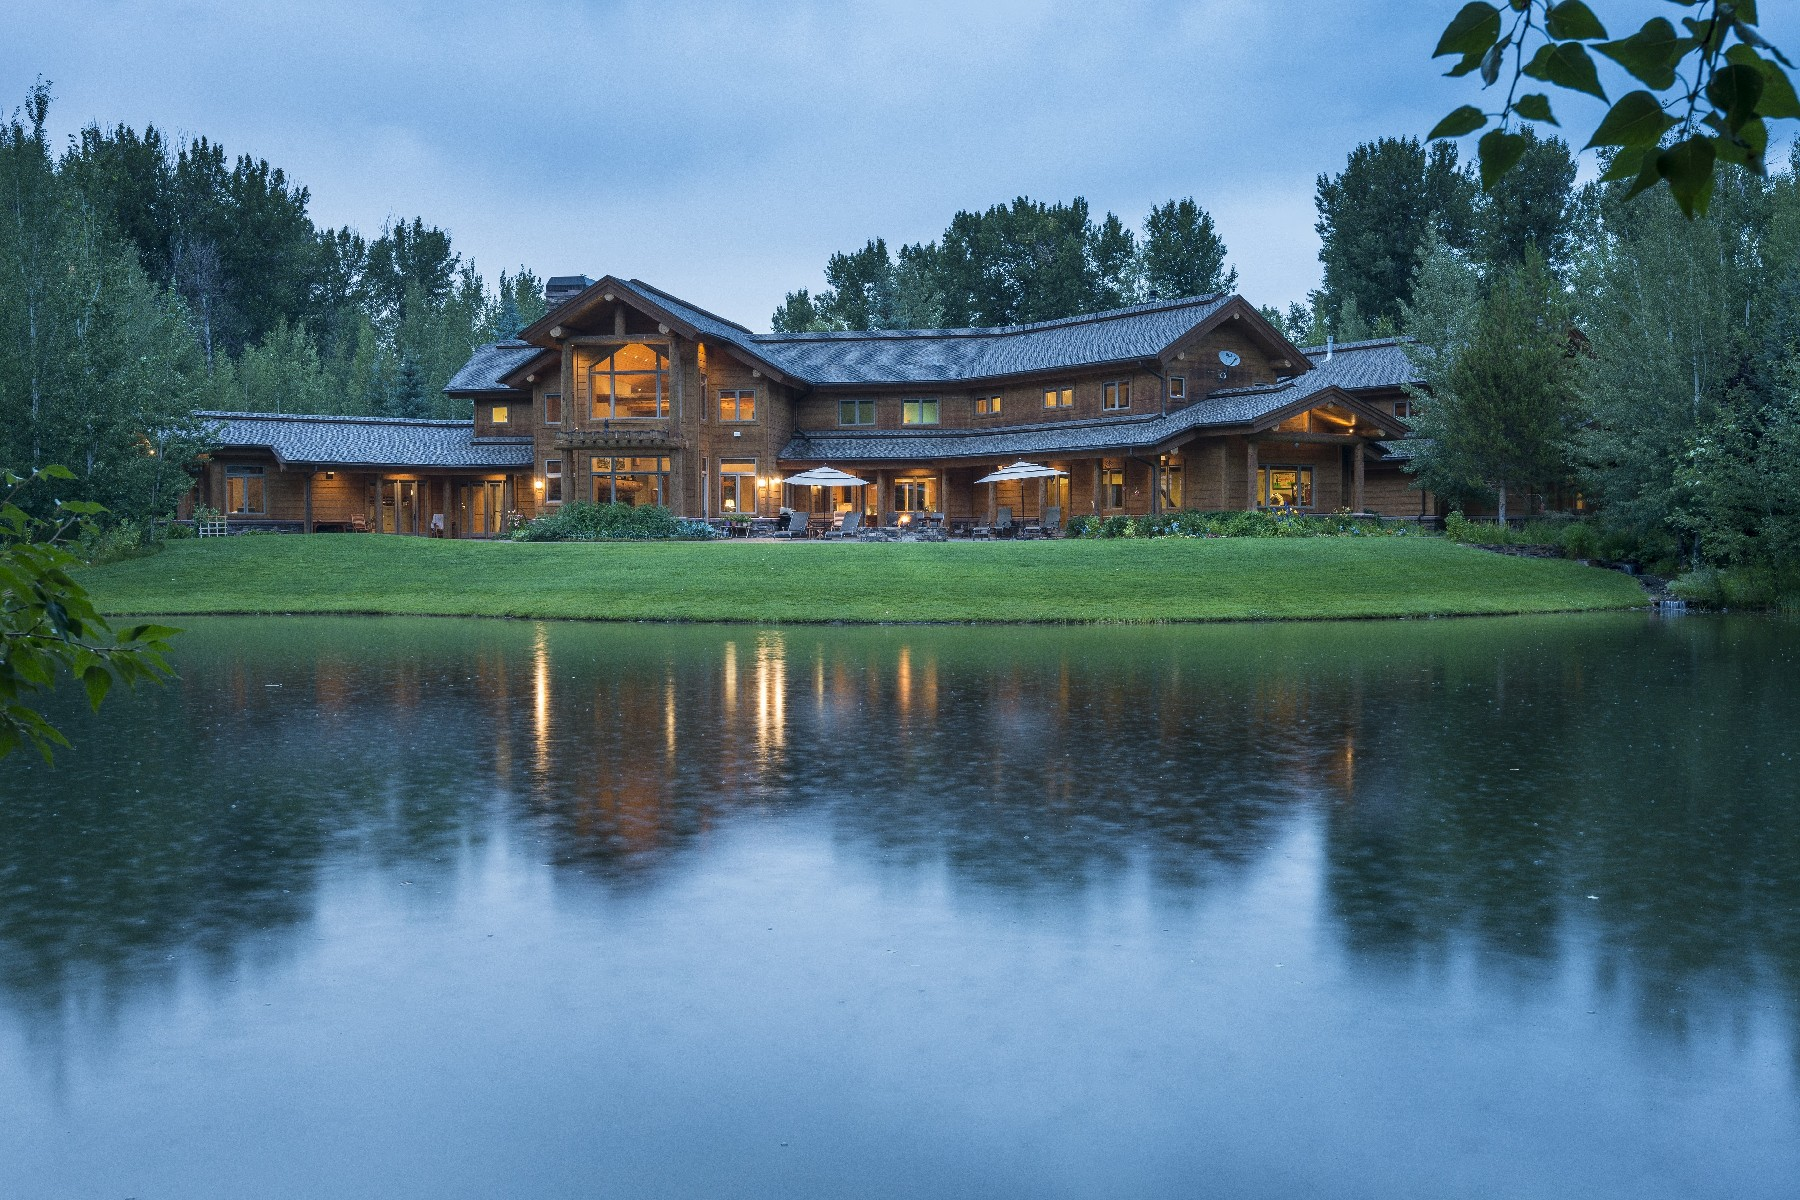 Single Family Home for Active at 35 Acres On The River 11886 State Hwy 75 Ketchum, Idaho 83340 United States